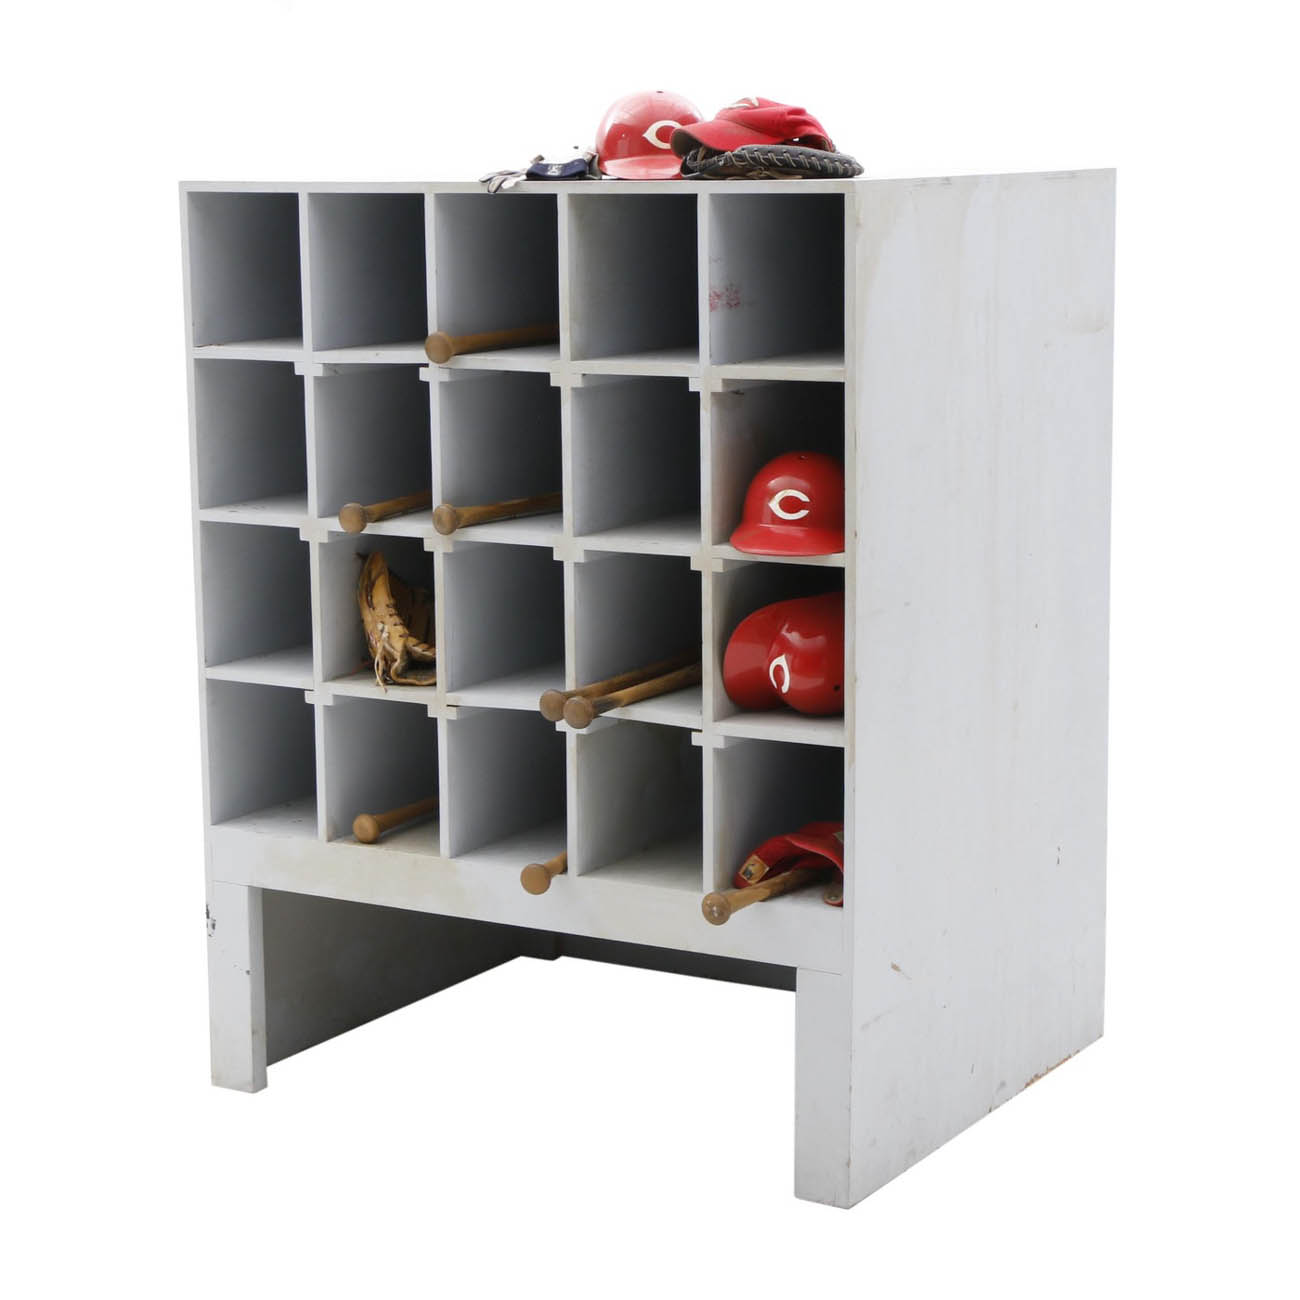 This Cincinnati Reds bat rack exhibit display includes Reds batting helmets, hats, gloves, and bats. / Image courtesy of Everything But The House (EBTH) // Published: 12.6.18